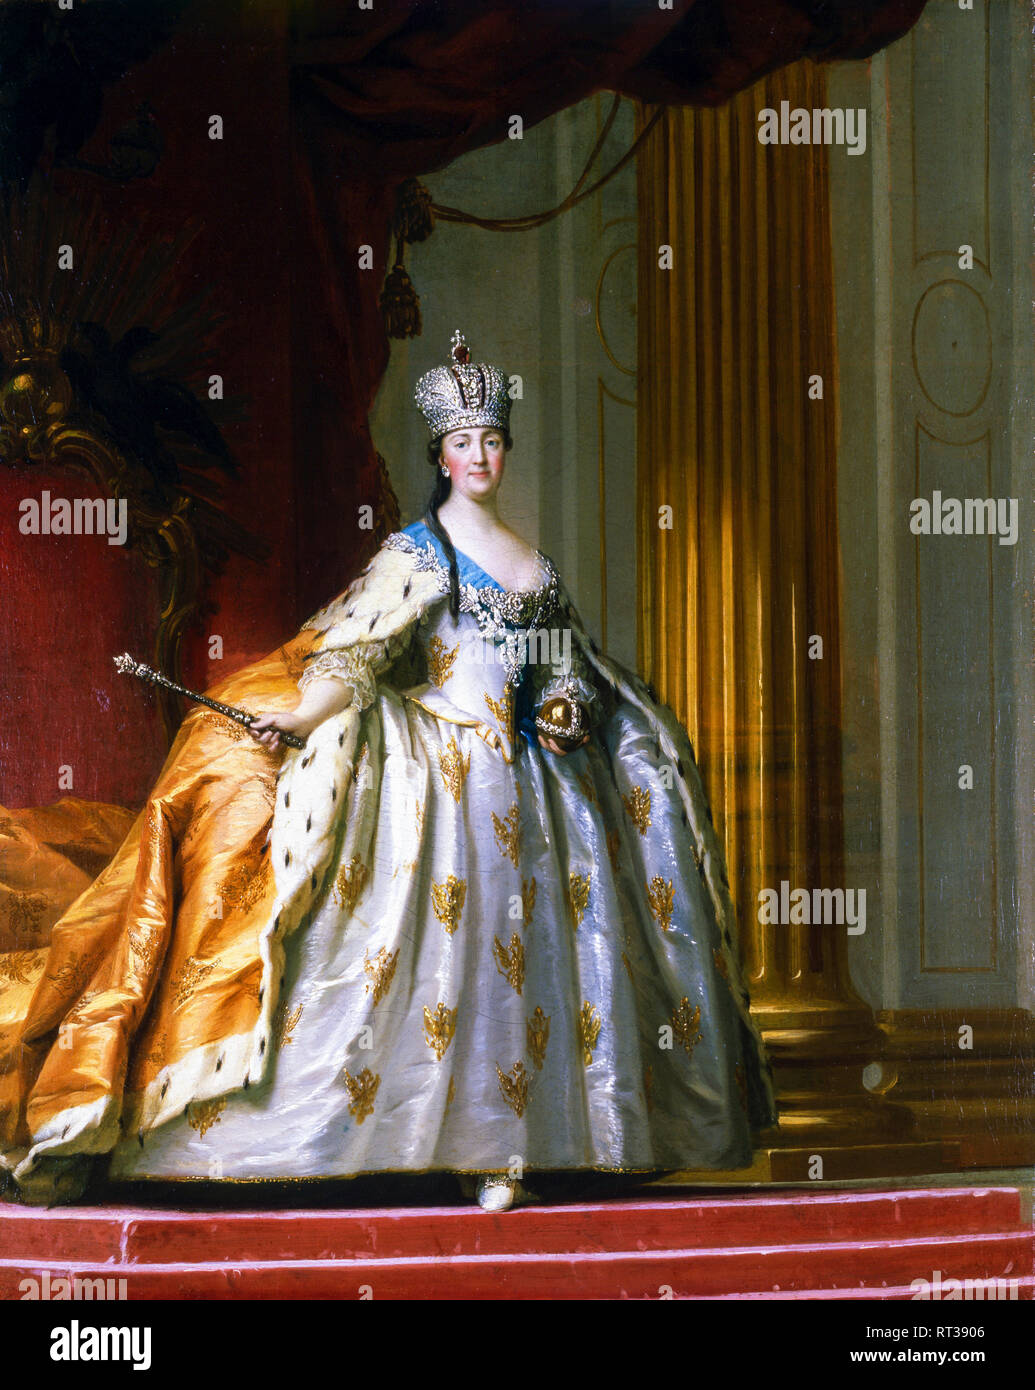 Catherine the Great in her Coronation Robes, Catherine II portrait painting, c. 1778 - Stock Image